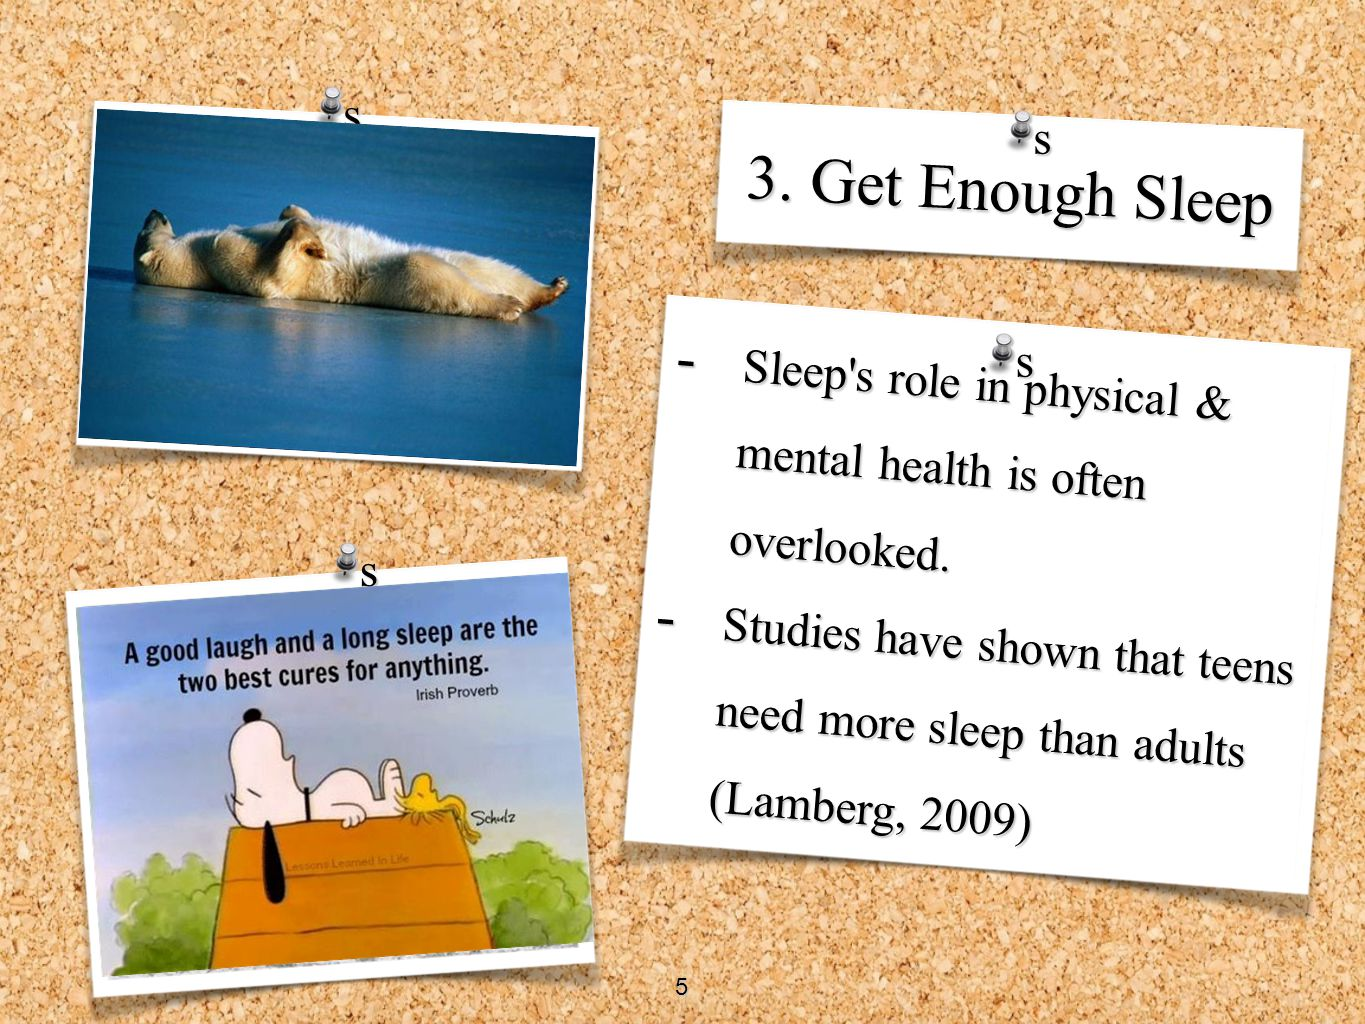 - Sleep's role in physical & mental health is often overlooked. - Studies have shown that teens need more sleep than adults (Lamberg, 2009) 3. Get Eno